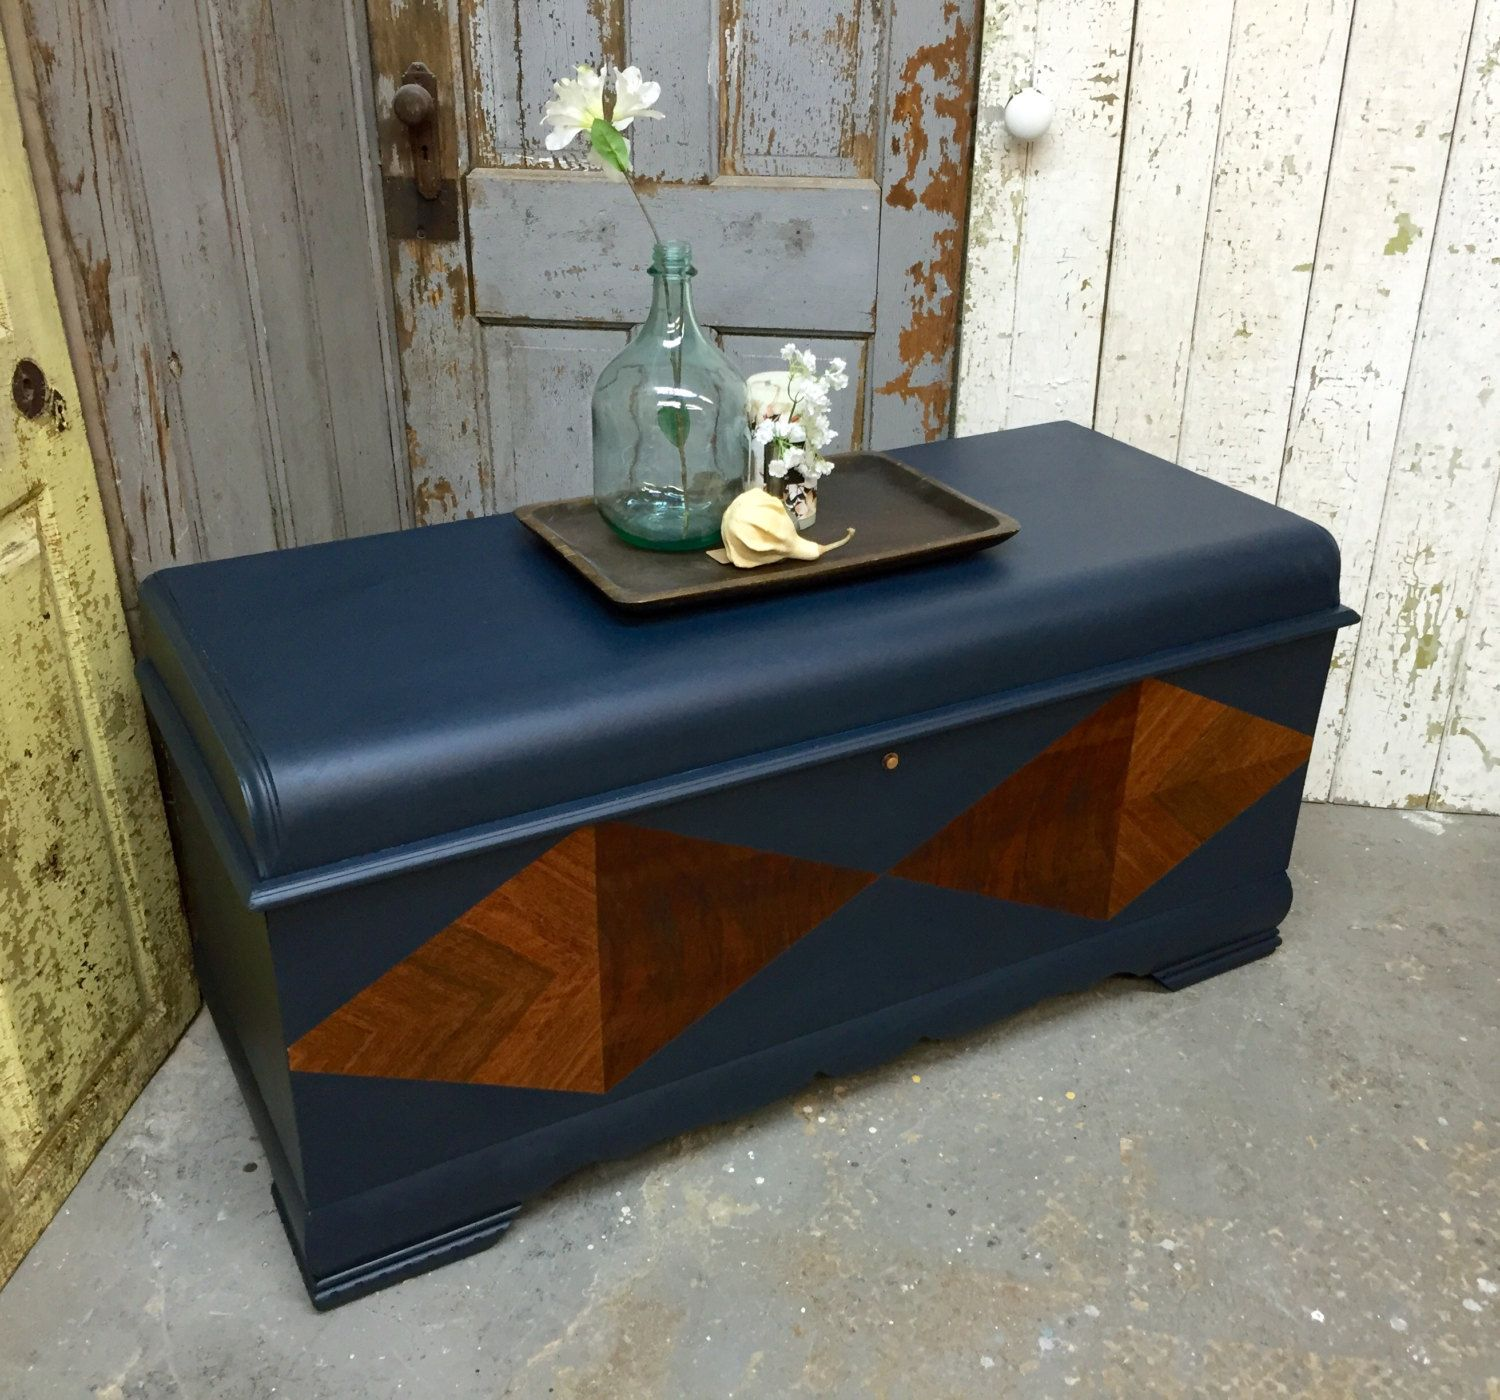 Vintage Furniture Take A Look Through Our Gallery Wooden Chest Painted Cedar Chest Cedar Chest Redo